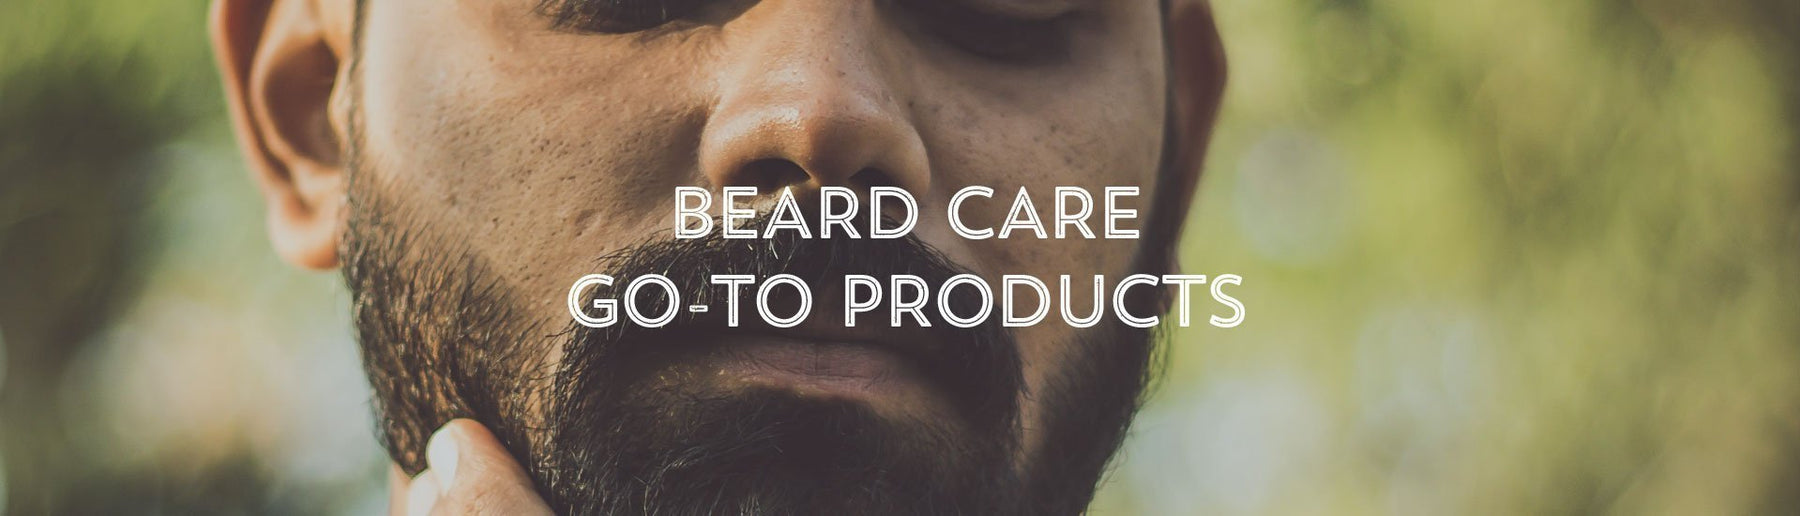 Beard Care Grooming 'Go-To' Products-West Coast Shaving